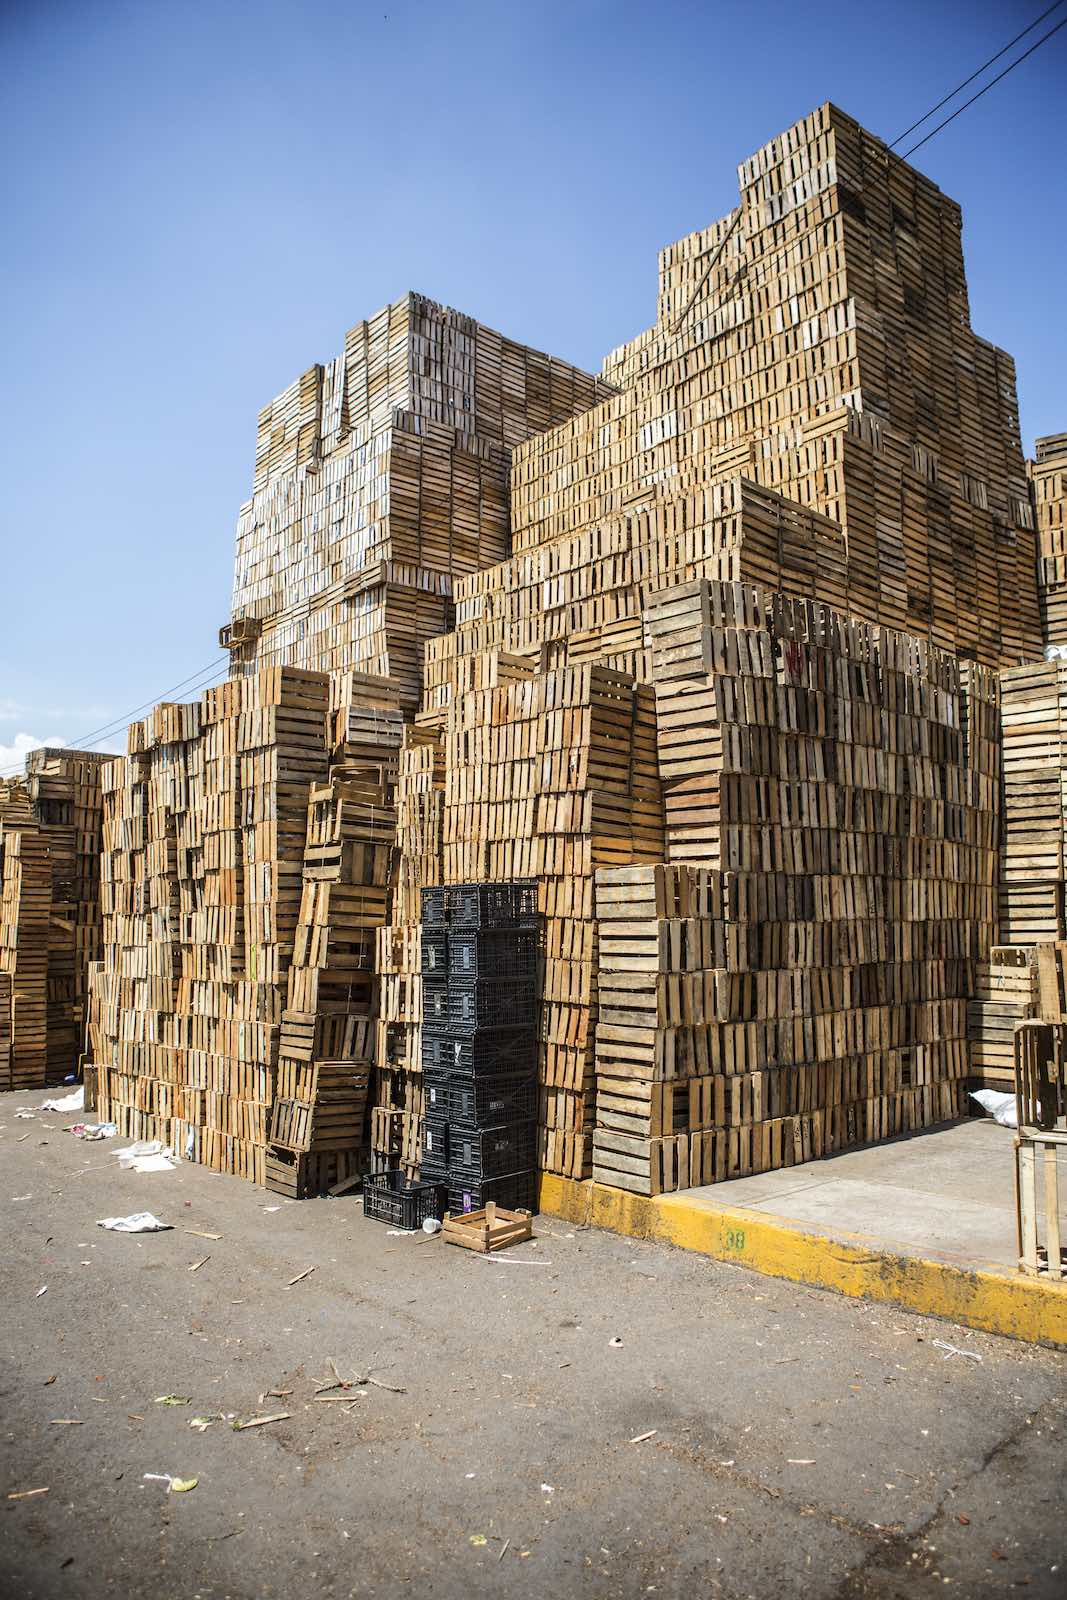 Wooden crates stacked stories high along a dusty street.